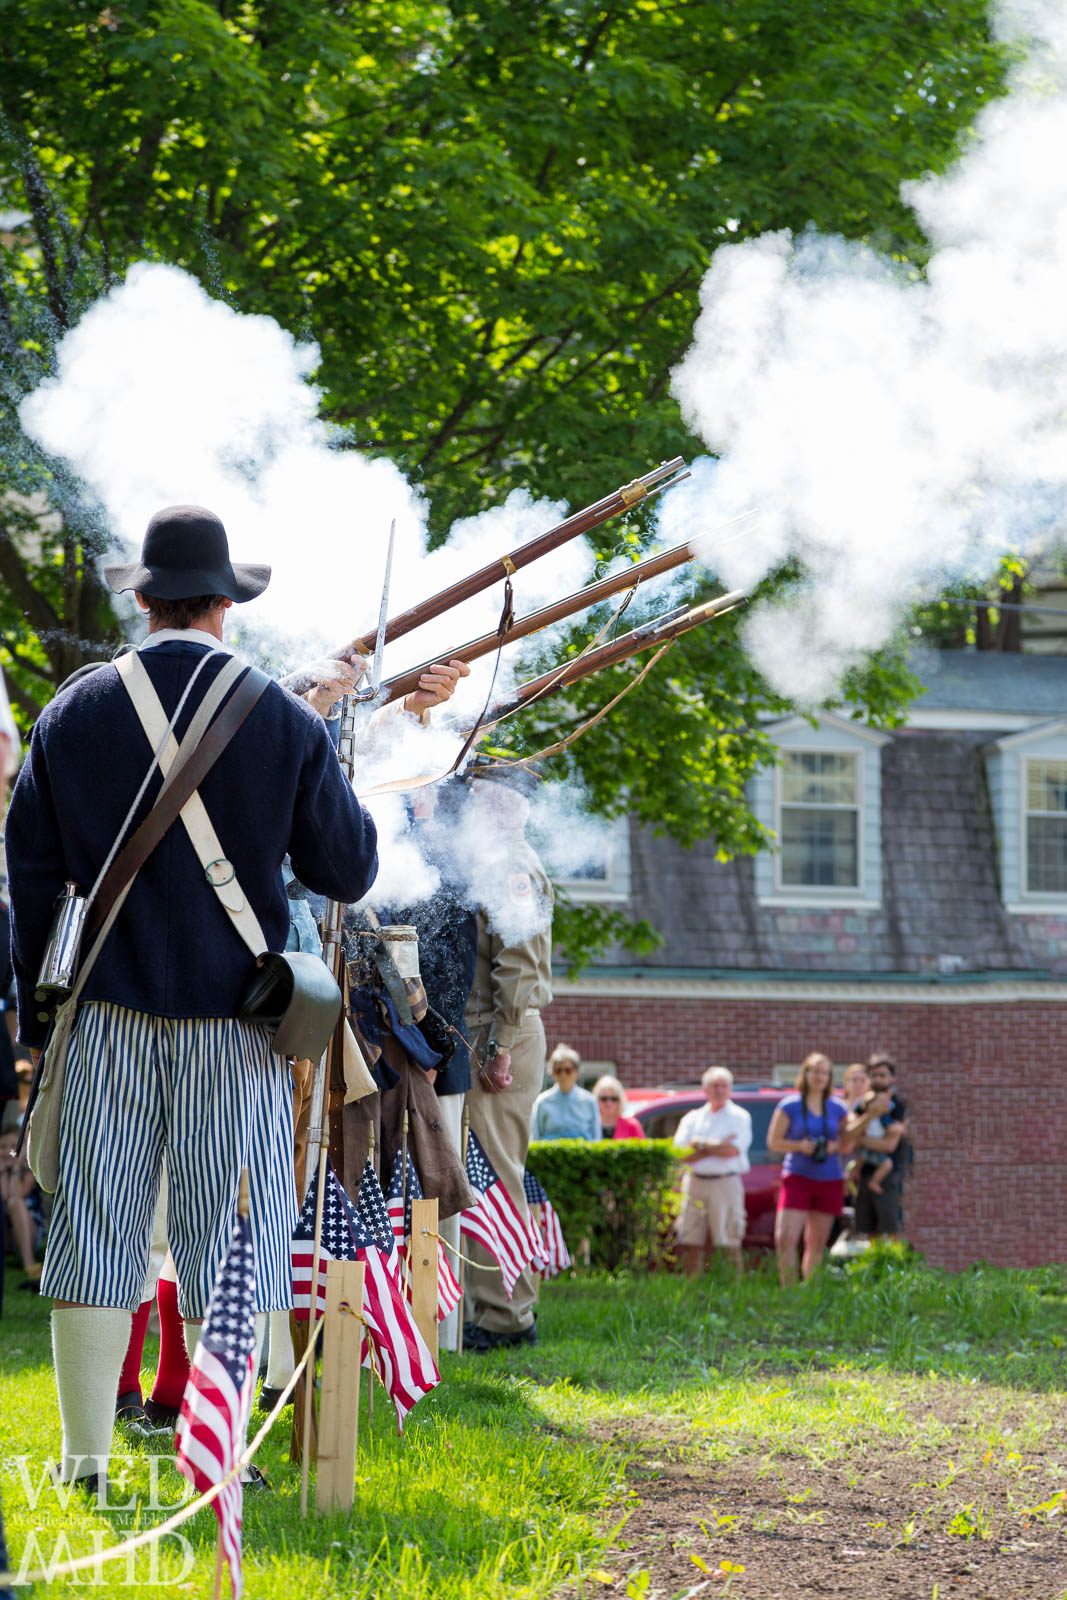 Firing Muskets on Memorial Day